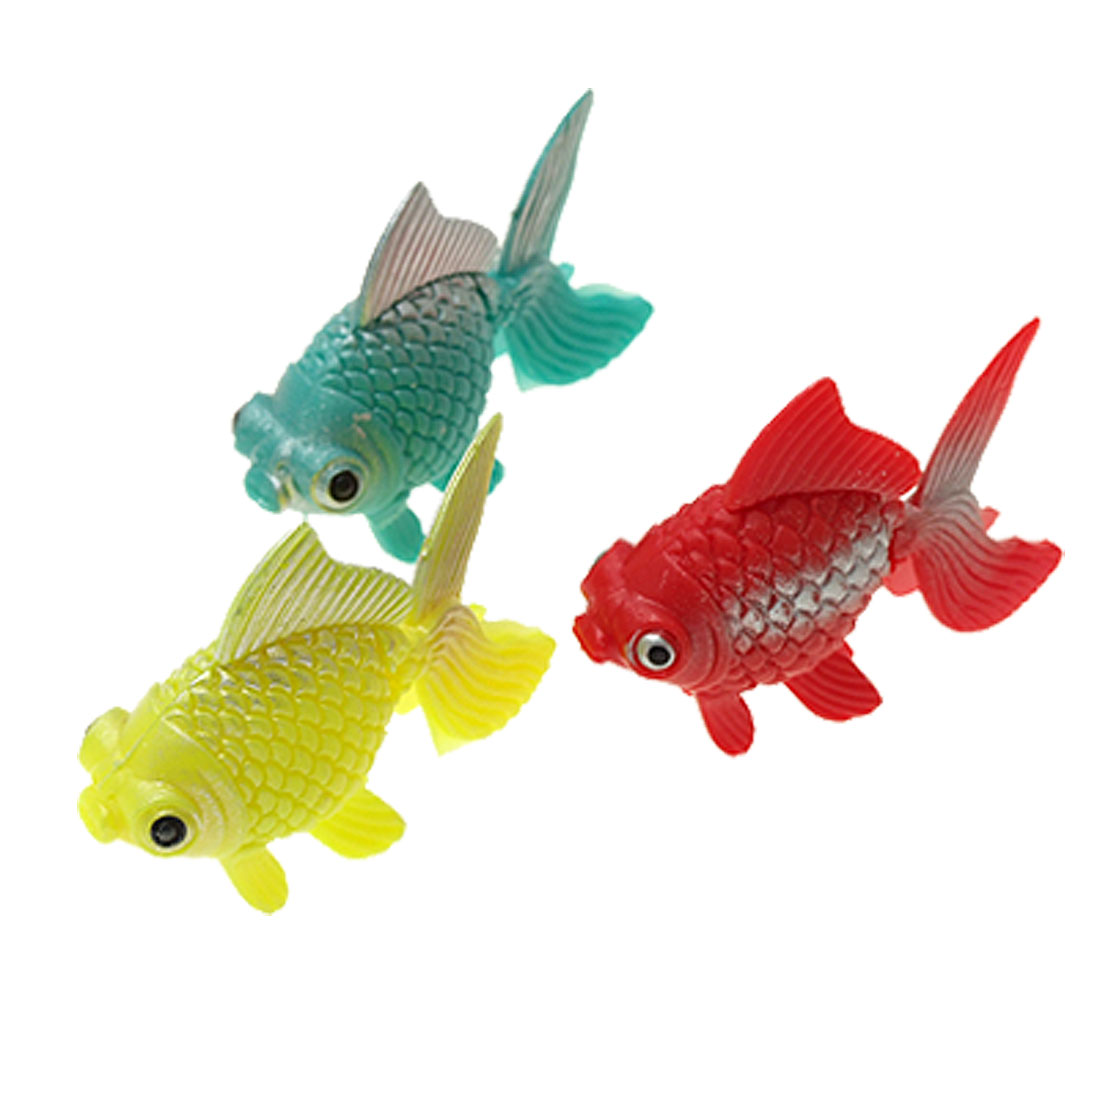 Lifelike Plastic Decorative Fish Ornament for Aquarium